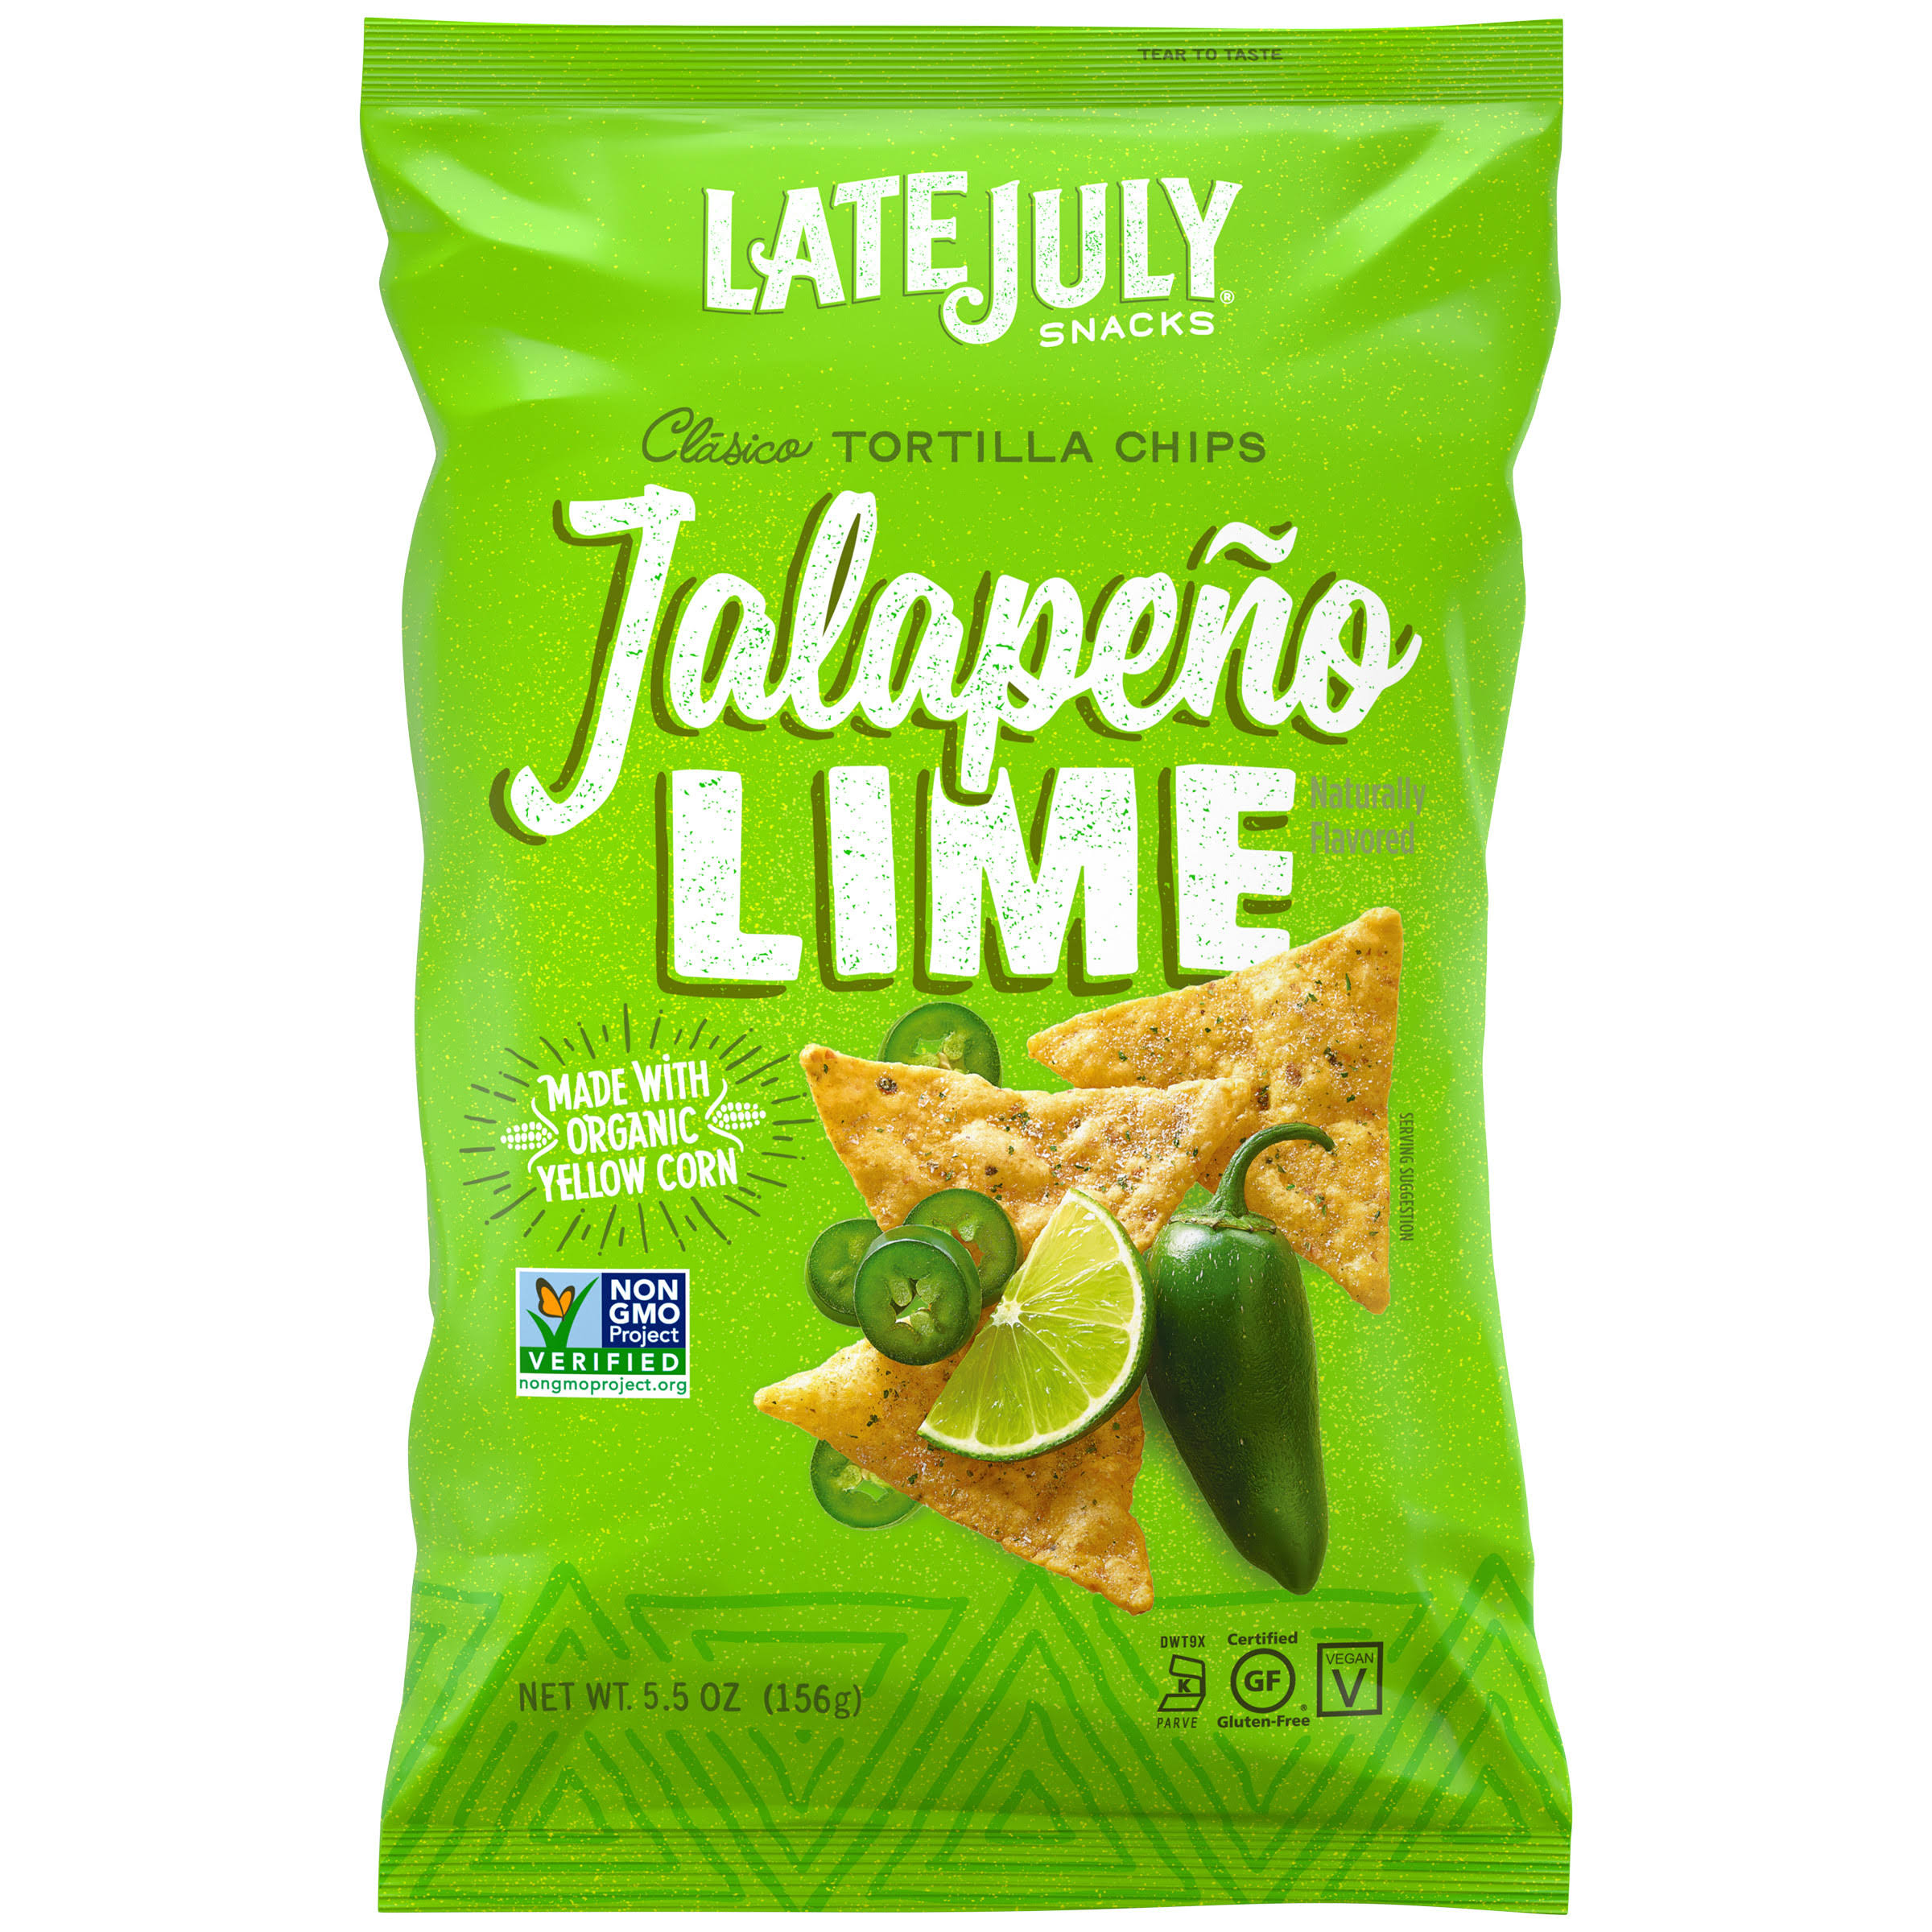 Late July Classic Tortilla Chips - Jalapeno Lime, 5.5oz